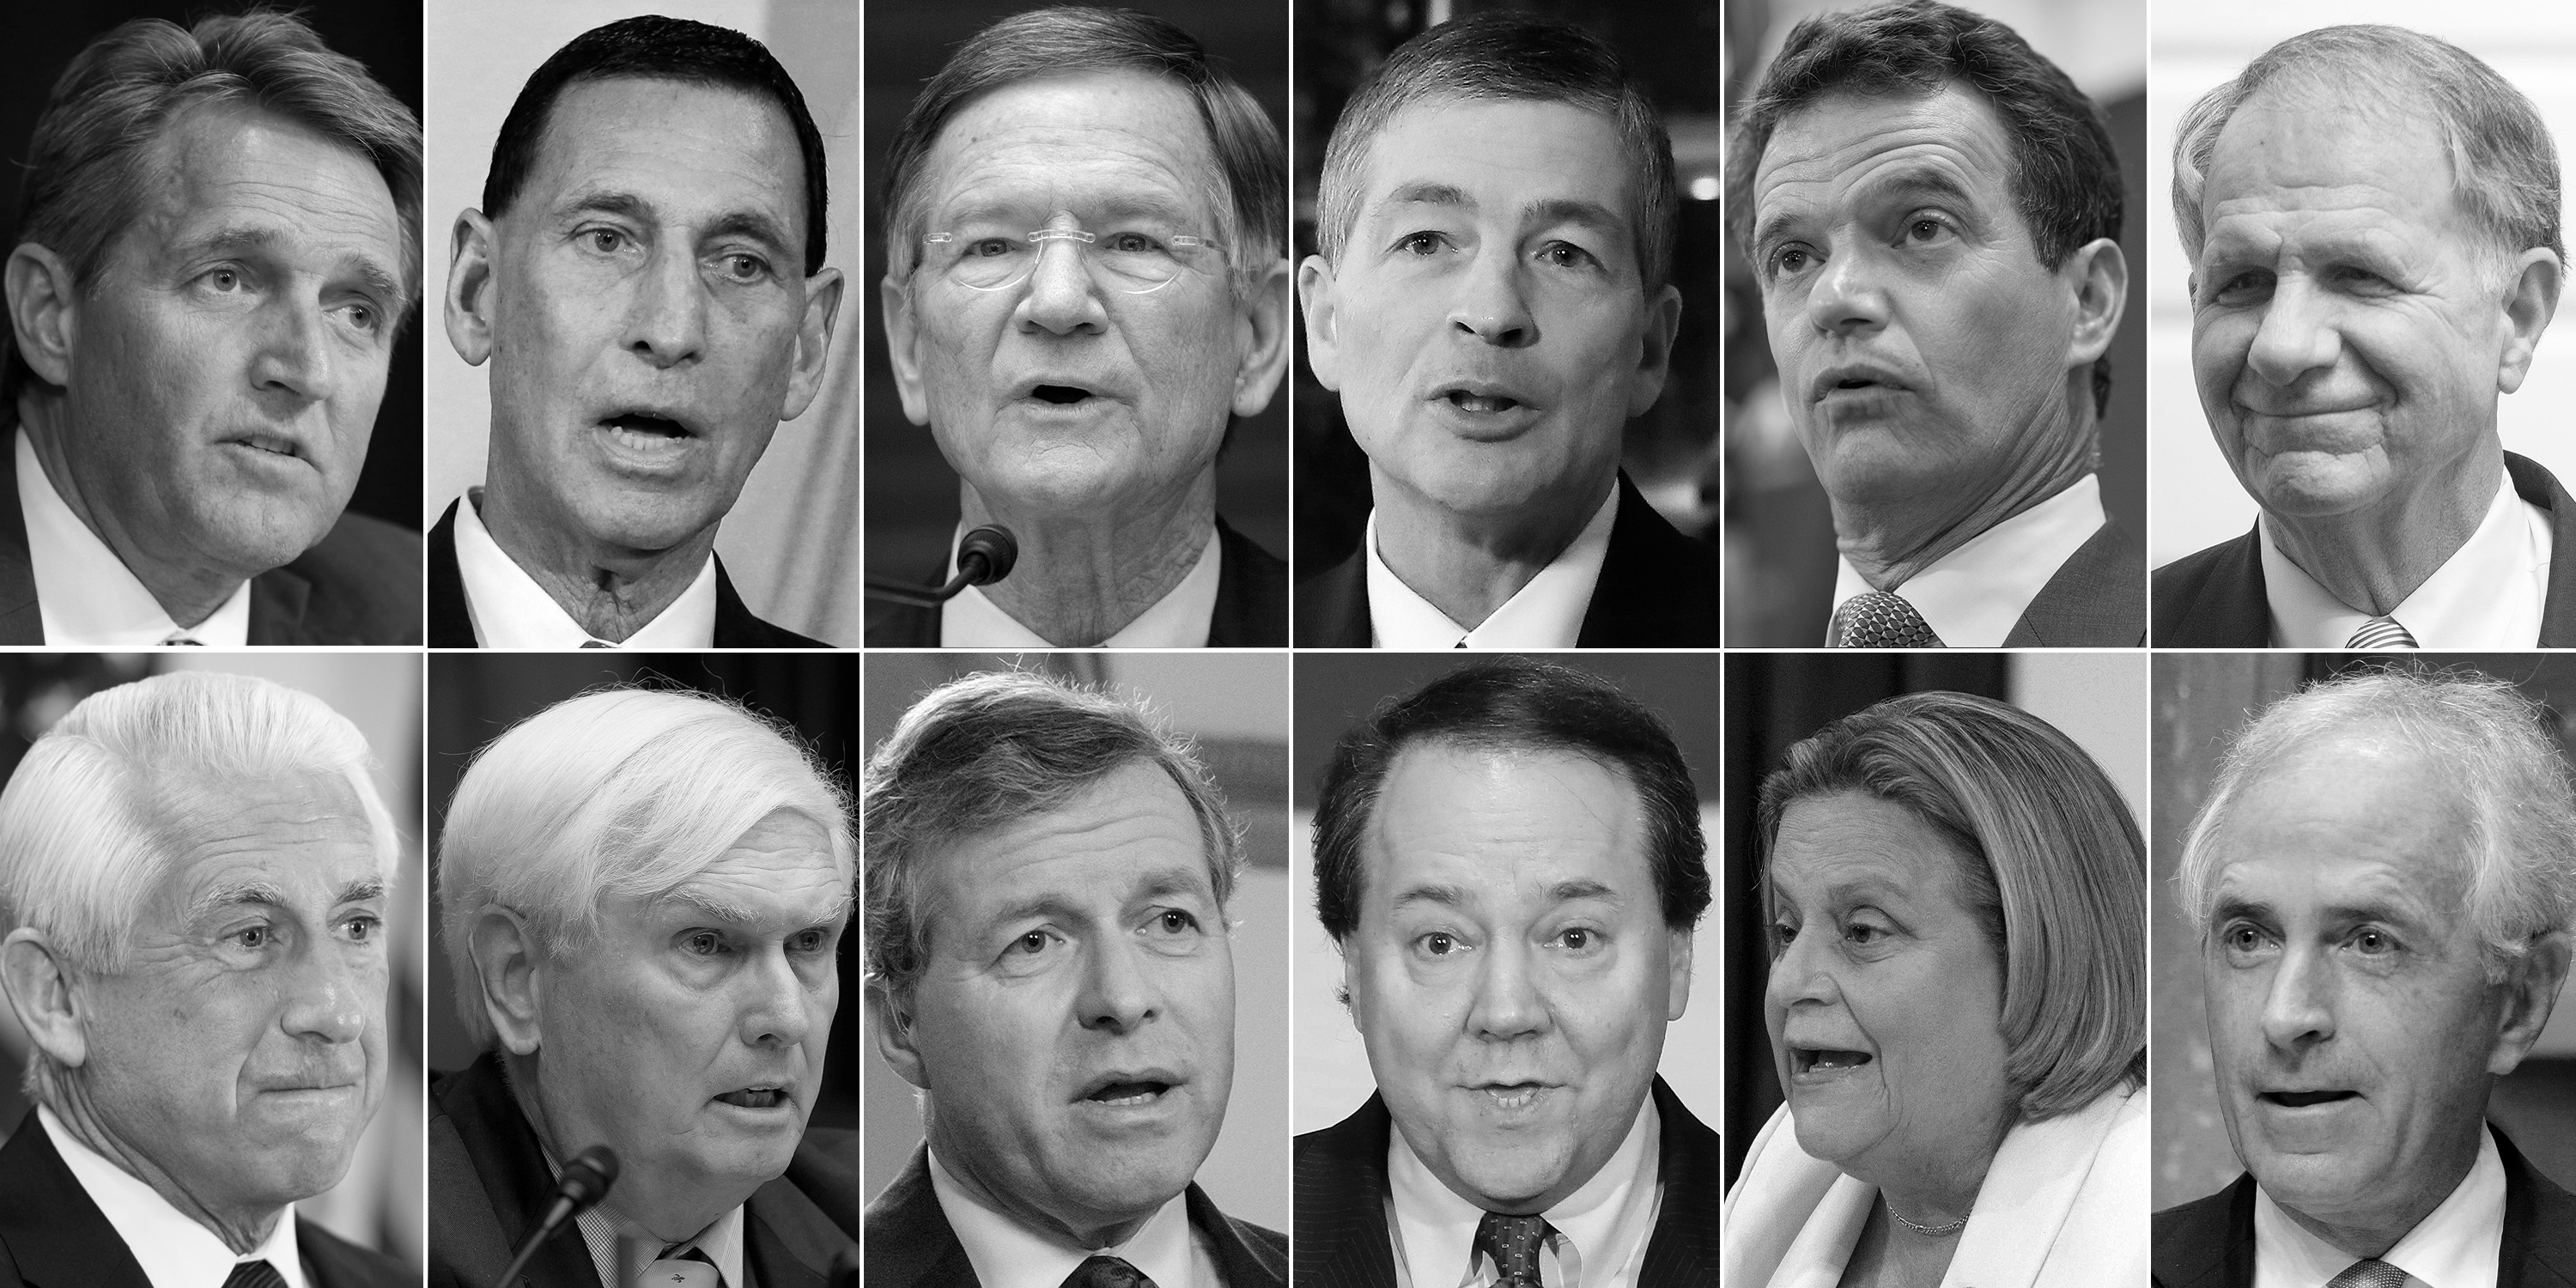 Republicans explain why they're retiring: 'You've got this administration that's taken the fun out of dysfunction'